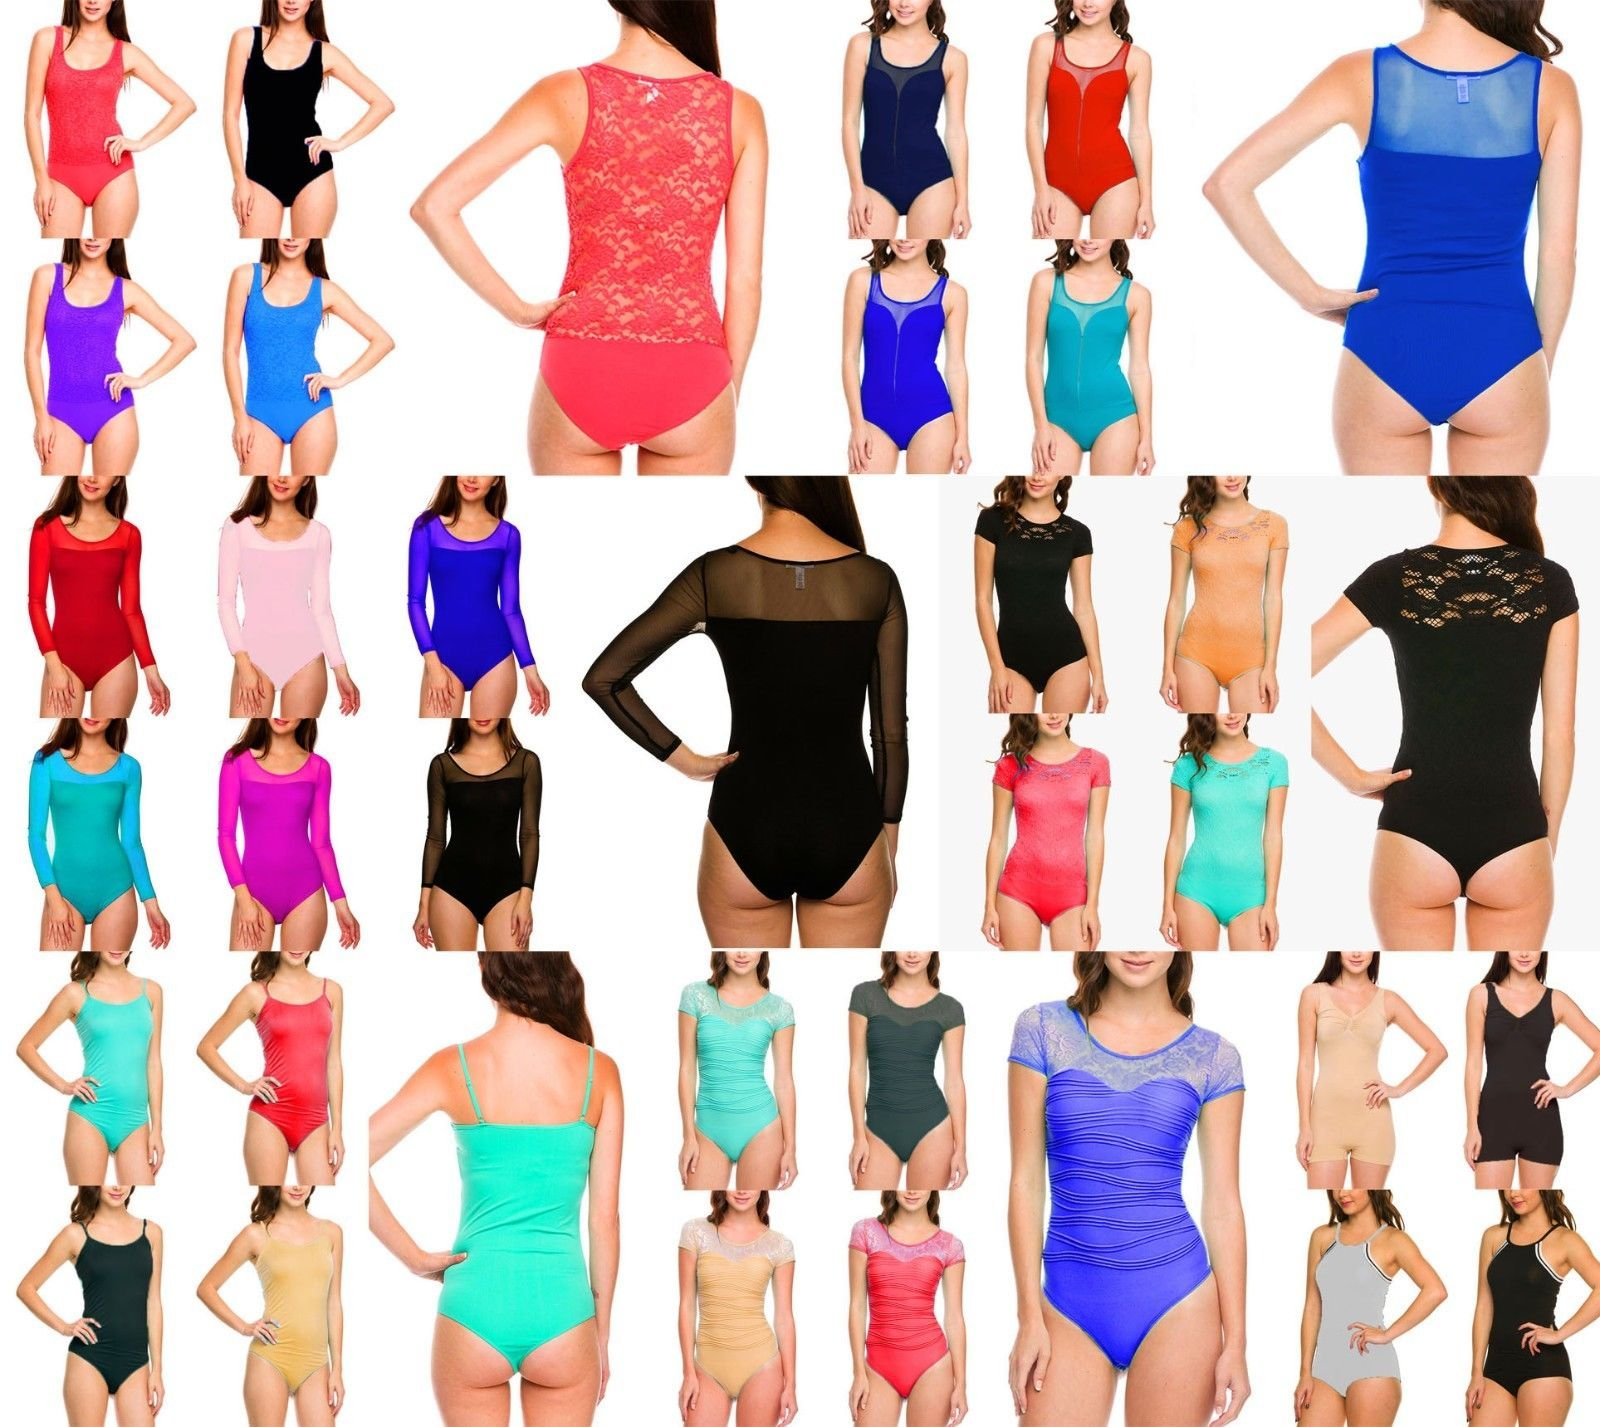 OLM Lot 5 Full Floral Lace Tank Bodysuit Sexy Mesh Sheer Back Snap Buttons Top S M L(S Lot Of 5 Assorted Colors/Styles)